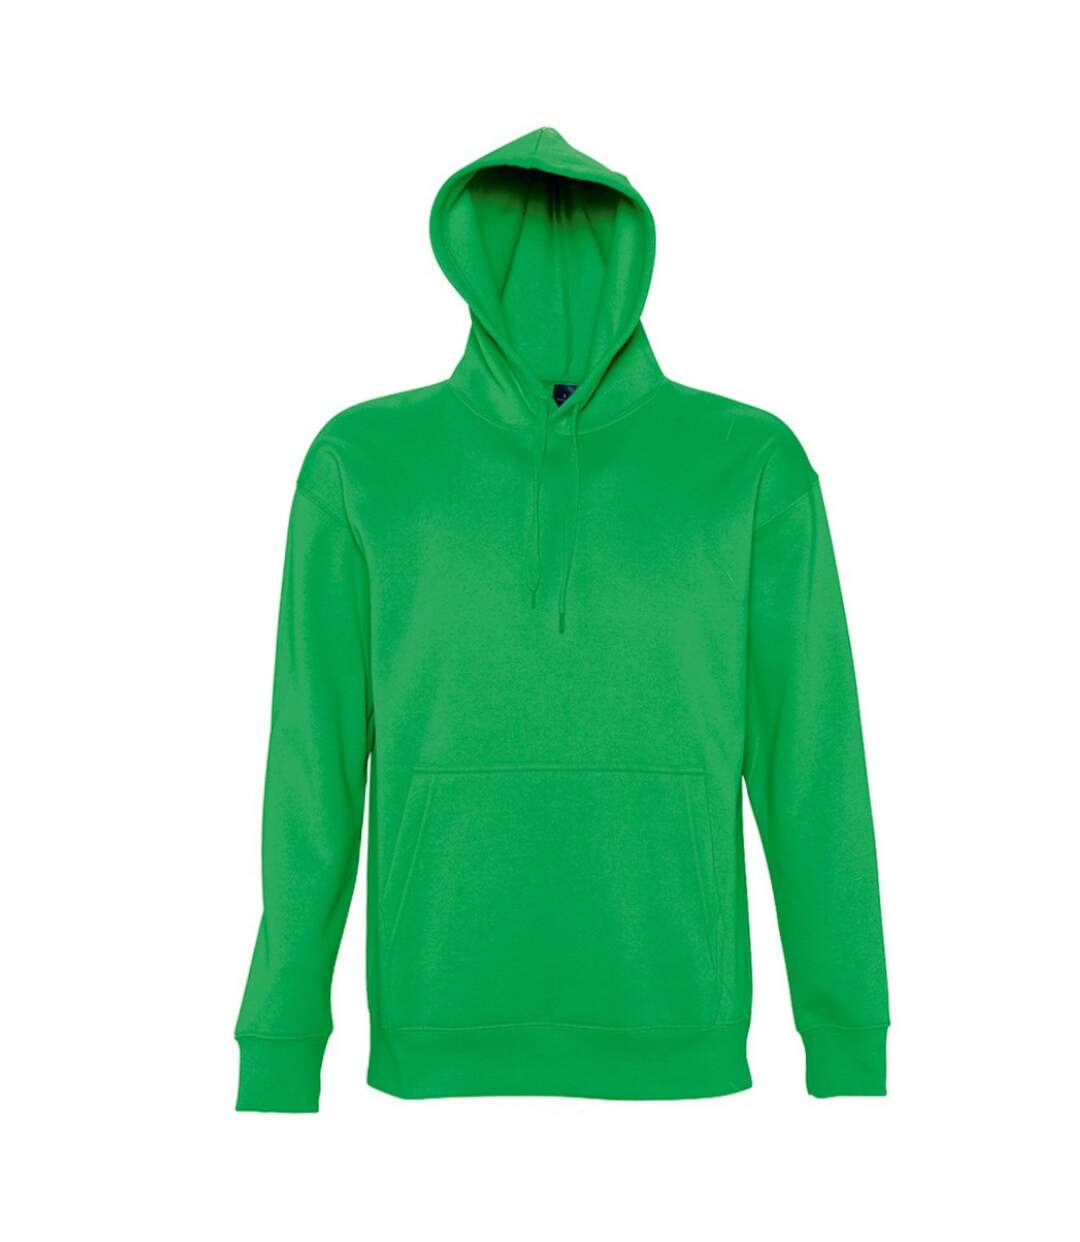 SOLS Slam Unisex Hooded Sweatshirt / Hoodie (Kelly Green) - UTPC381